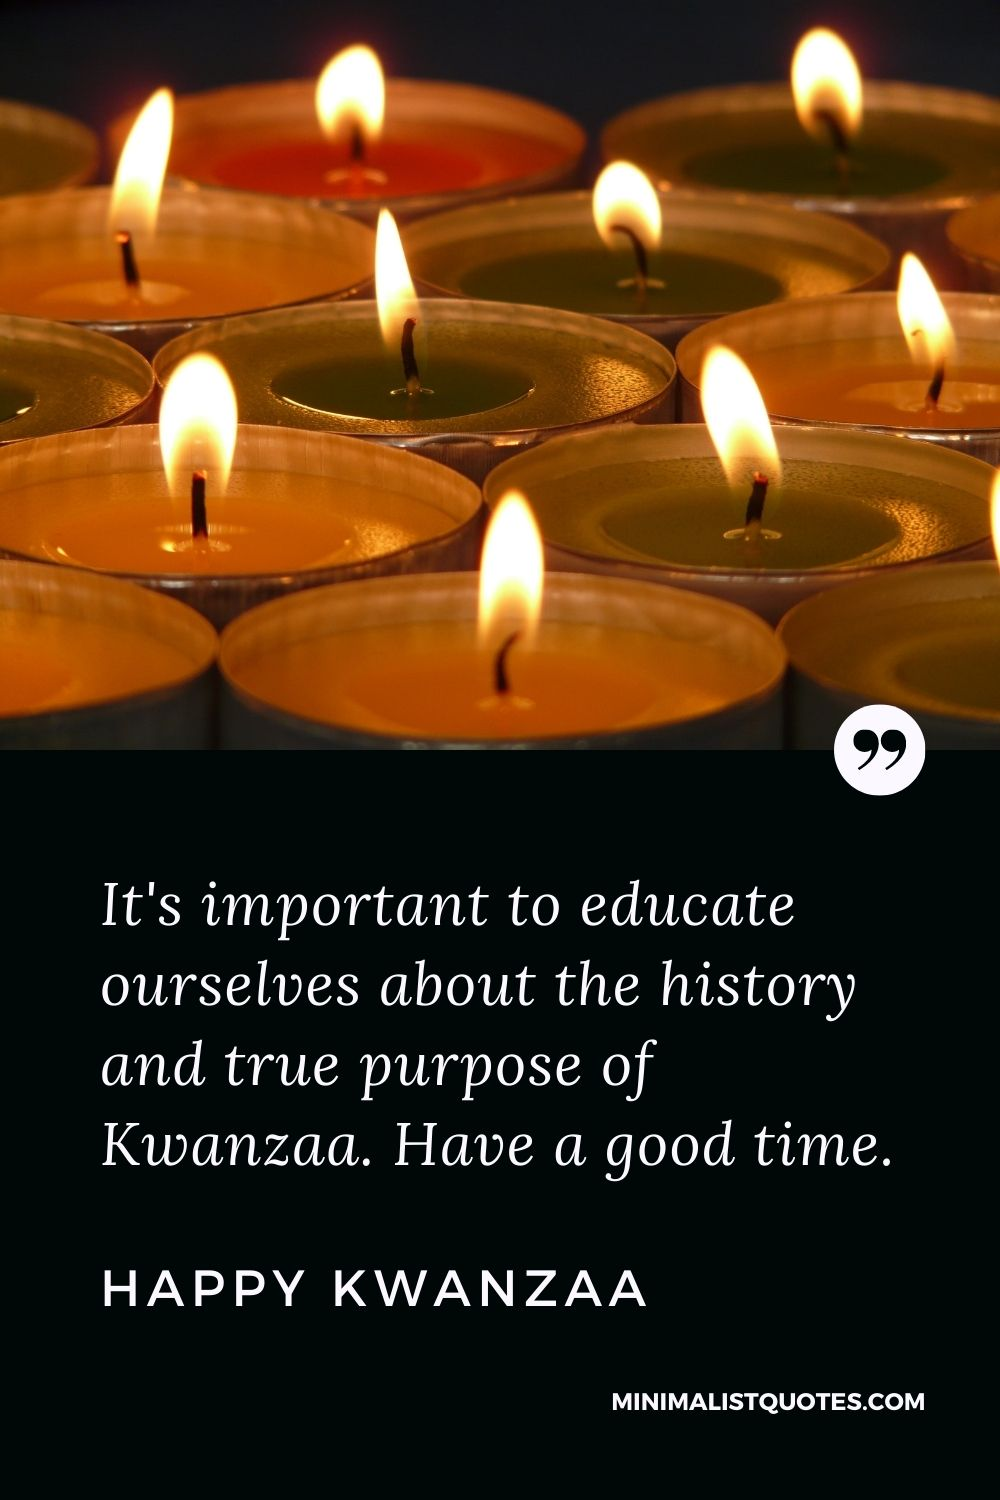 Kwanzaa Quote, Wish & Message With Image: It's important to educate ourselves about the history and true purpose of Kwanzaa. Have a good time. Happy Kwanzaa!